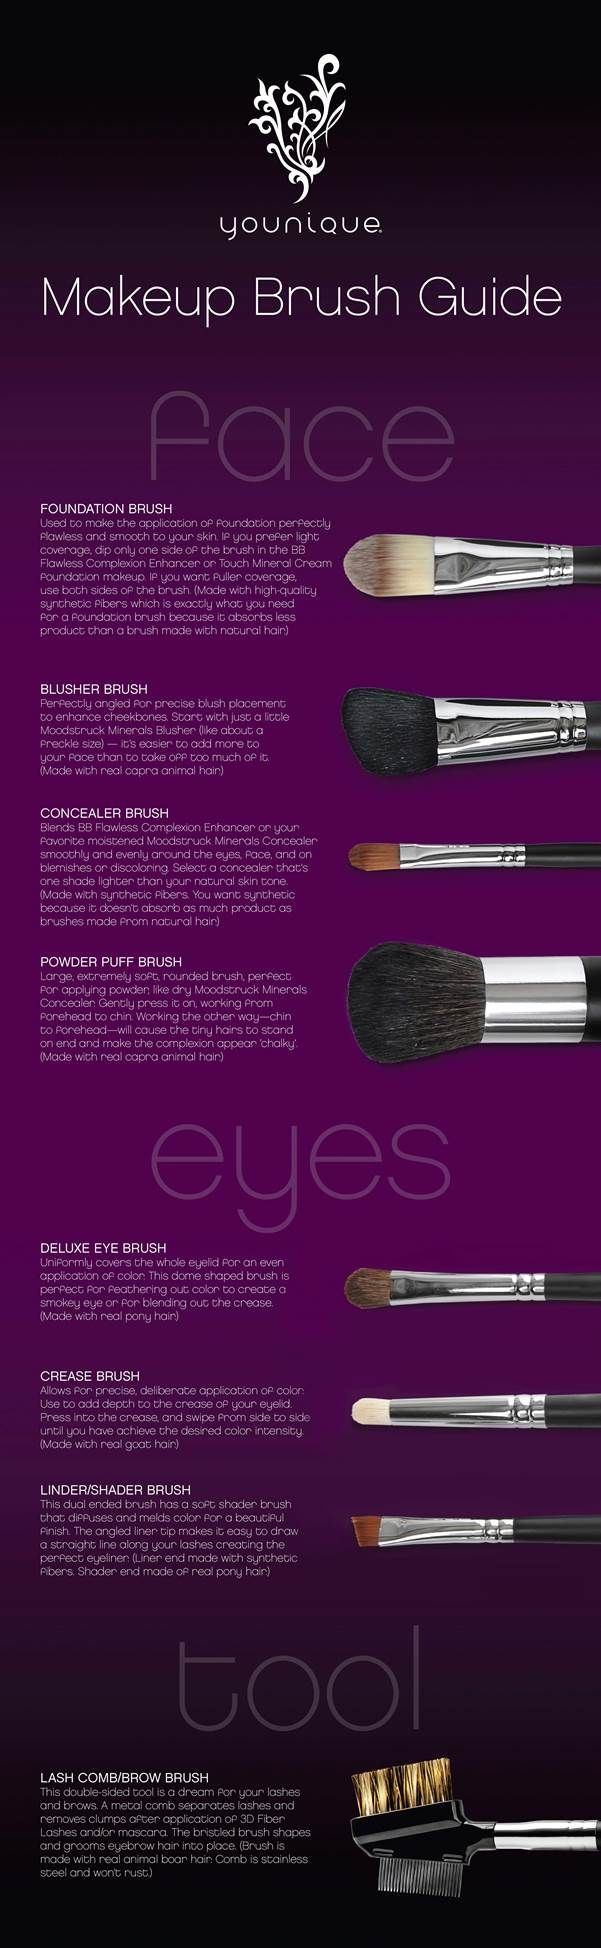 LOVE THIS! Ever wonder what all those different makeup brushes are for? Great explanation and Makeup tips! hypoallergenic, cruelty free, free of harmful chemicals, gluten free, carcinogen free, paraben free, no fillers, makeup, primer, BB Creams, Foundation, Blush, Lip Gloss, 3D Fiber Lash Mascara, Mineral Pigments, Rose Water, Face Wash, Moisturizing Gel, Makeup Brushes, great gifts! $12 and up www.lashesbysuzie.com